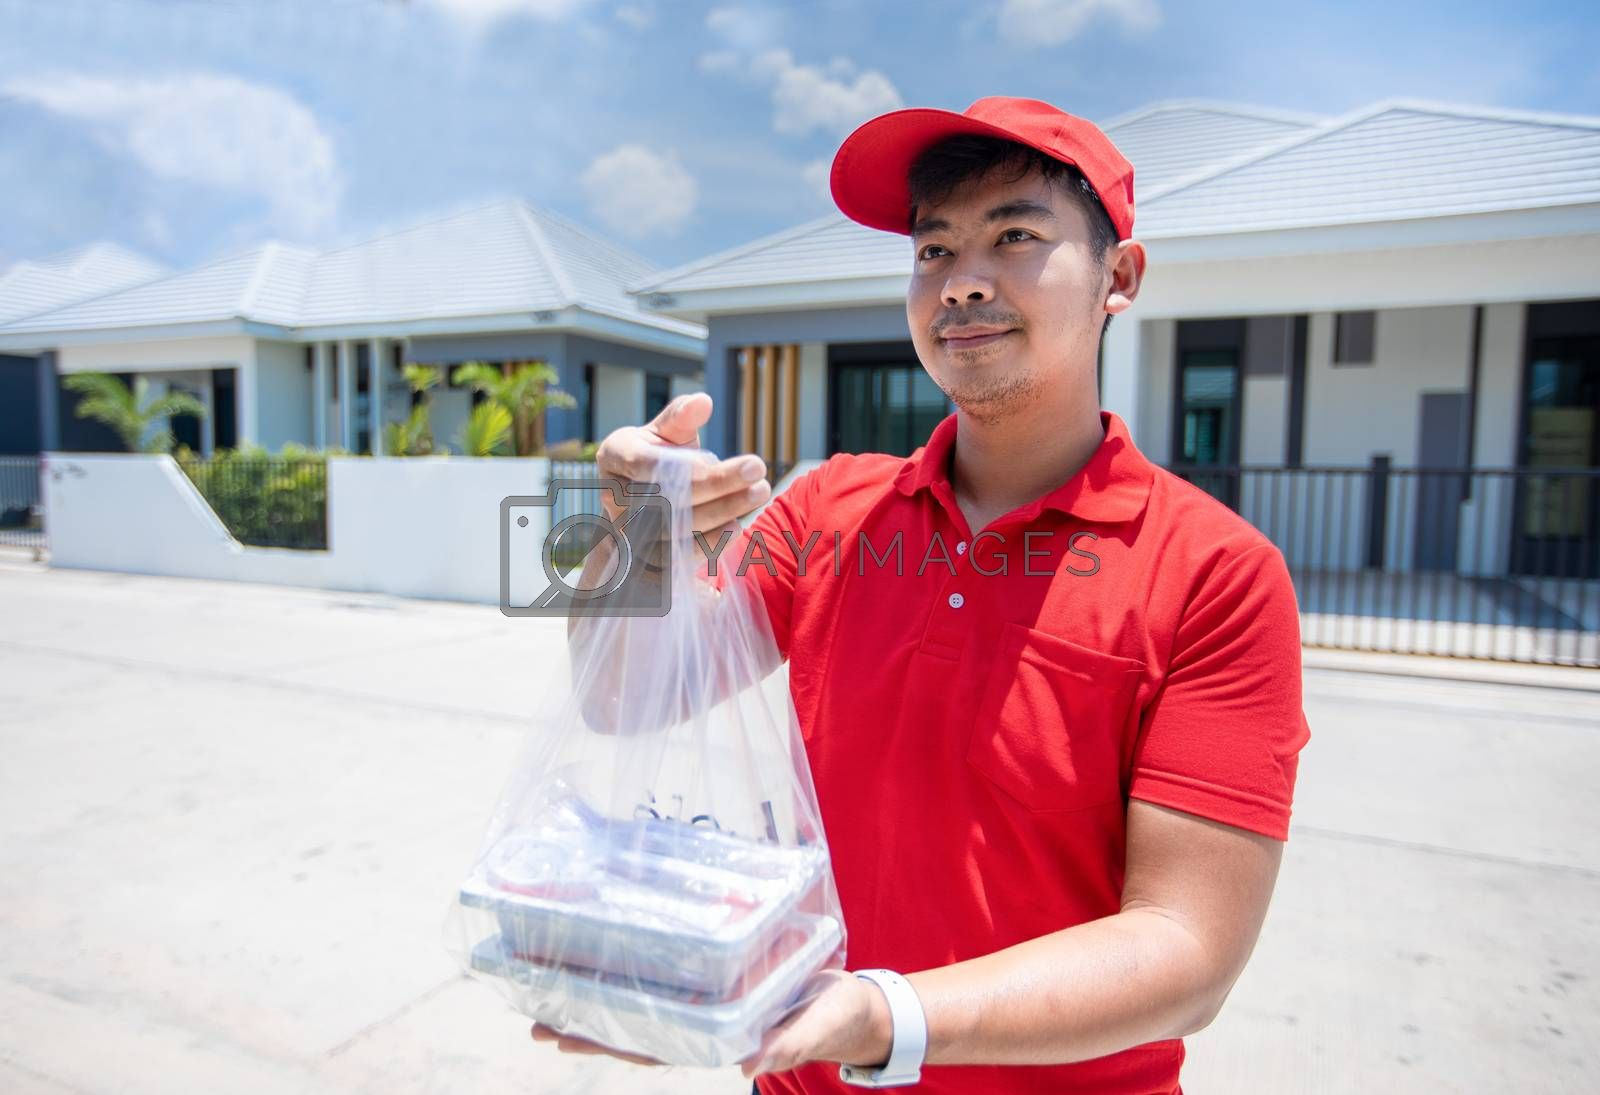 Asian delivery servicemen wearing a red uniform with a red cap and handling food boxes in plastic bags to give to the customer in front of the house. Online shopping and Express delivery